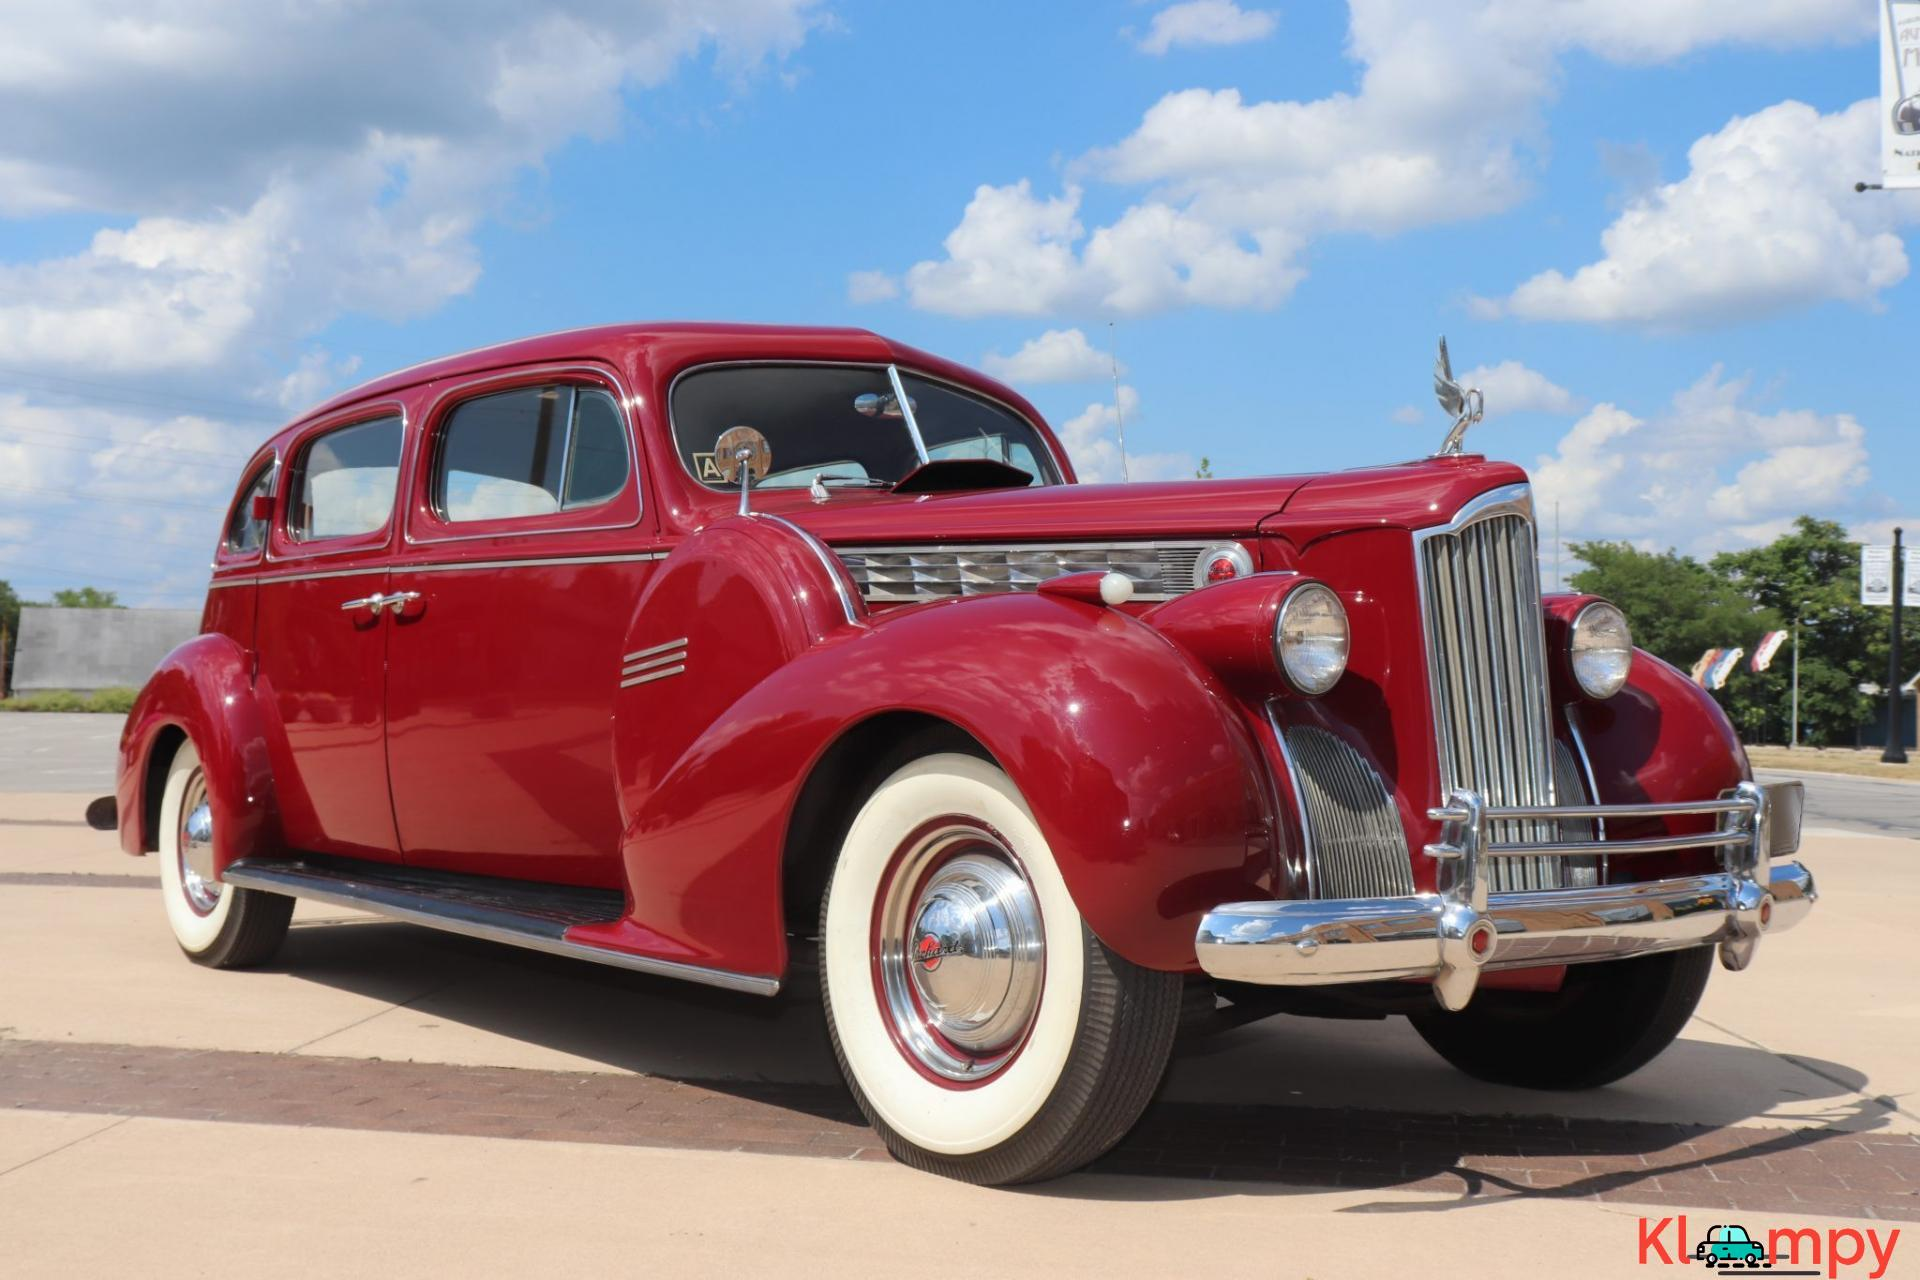 1940 Packard One-Eighty Super Eight 356CI - 2/24